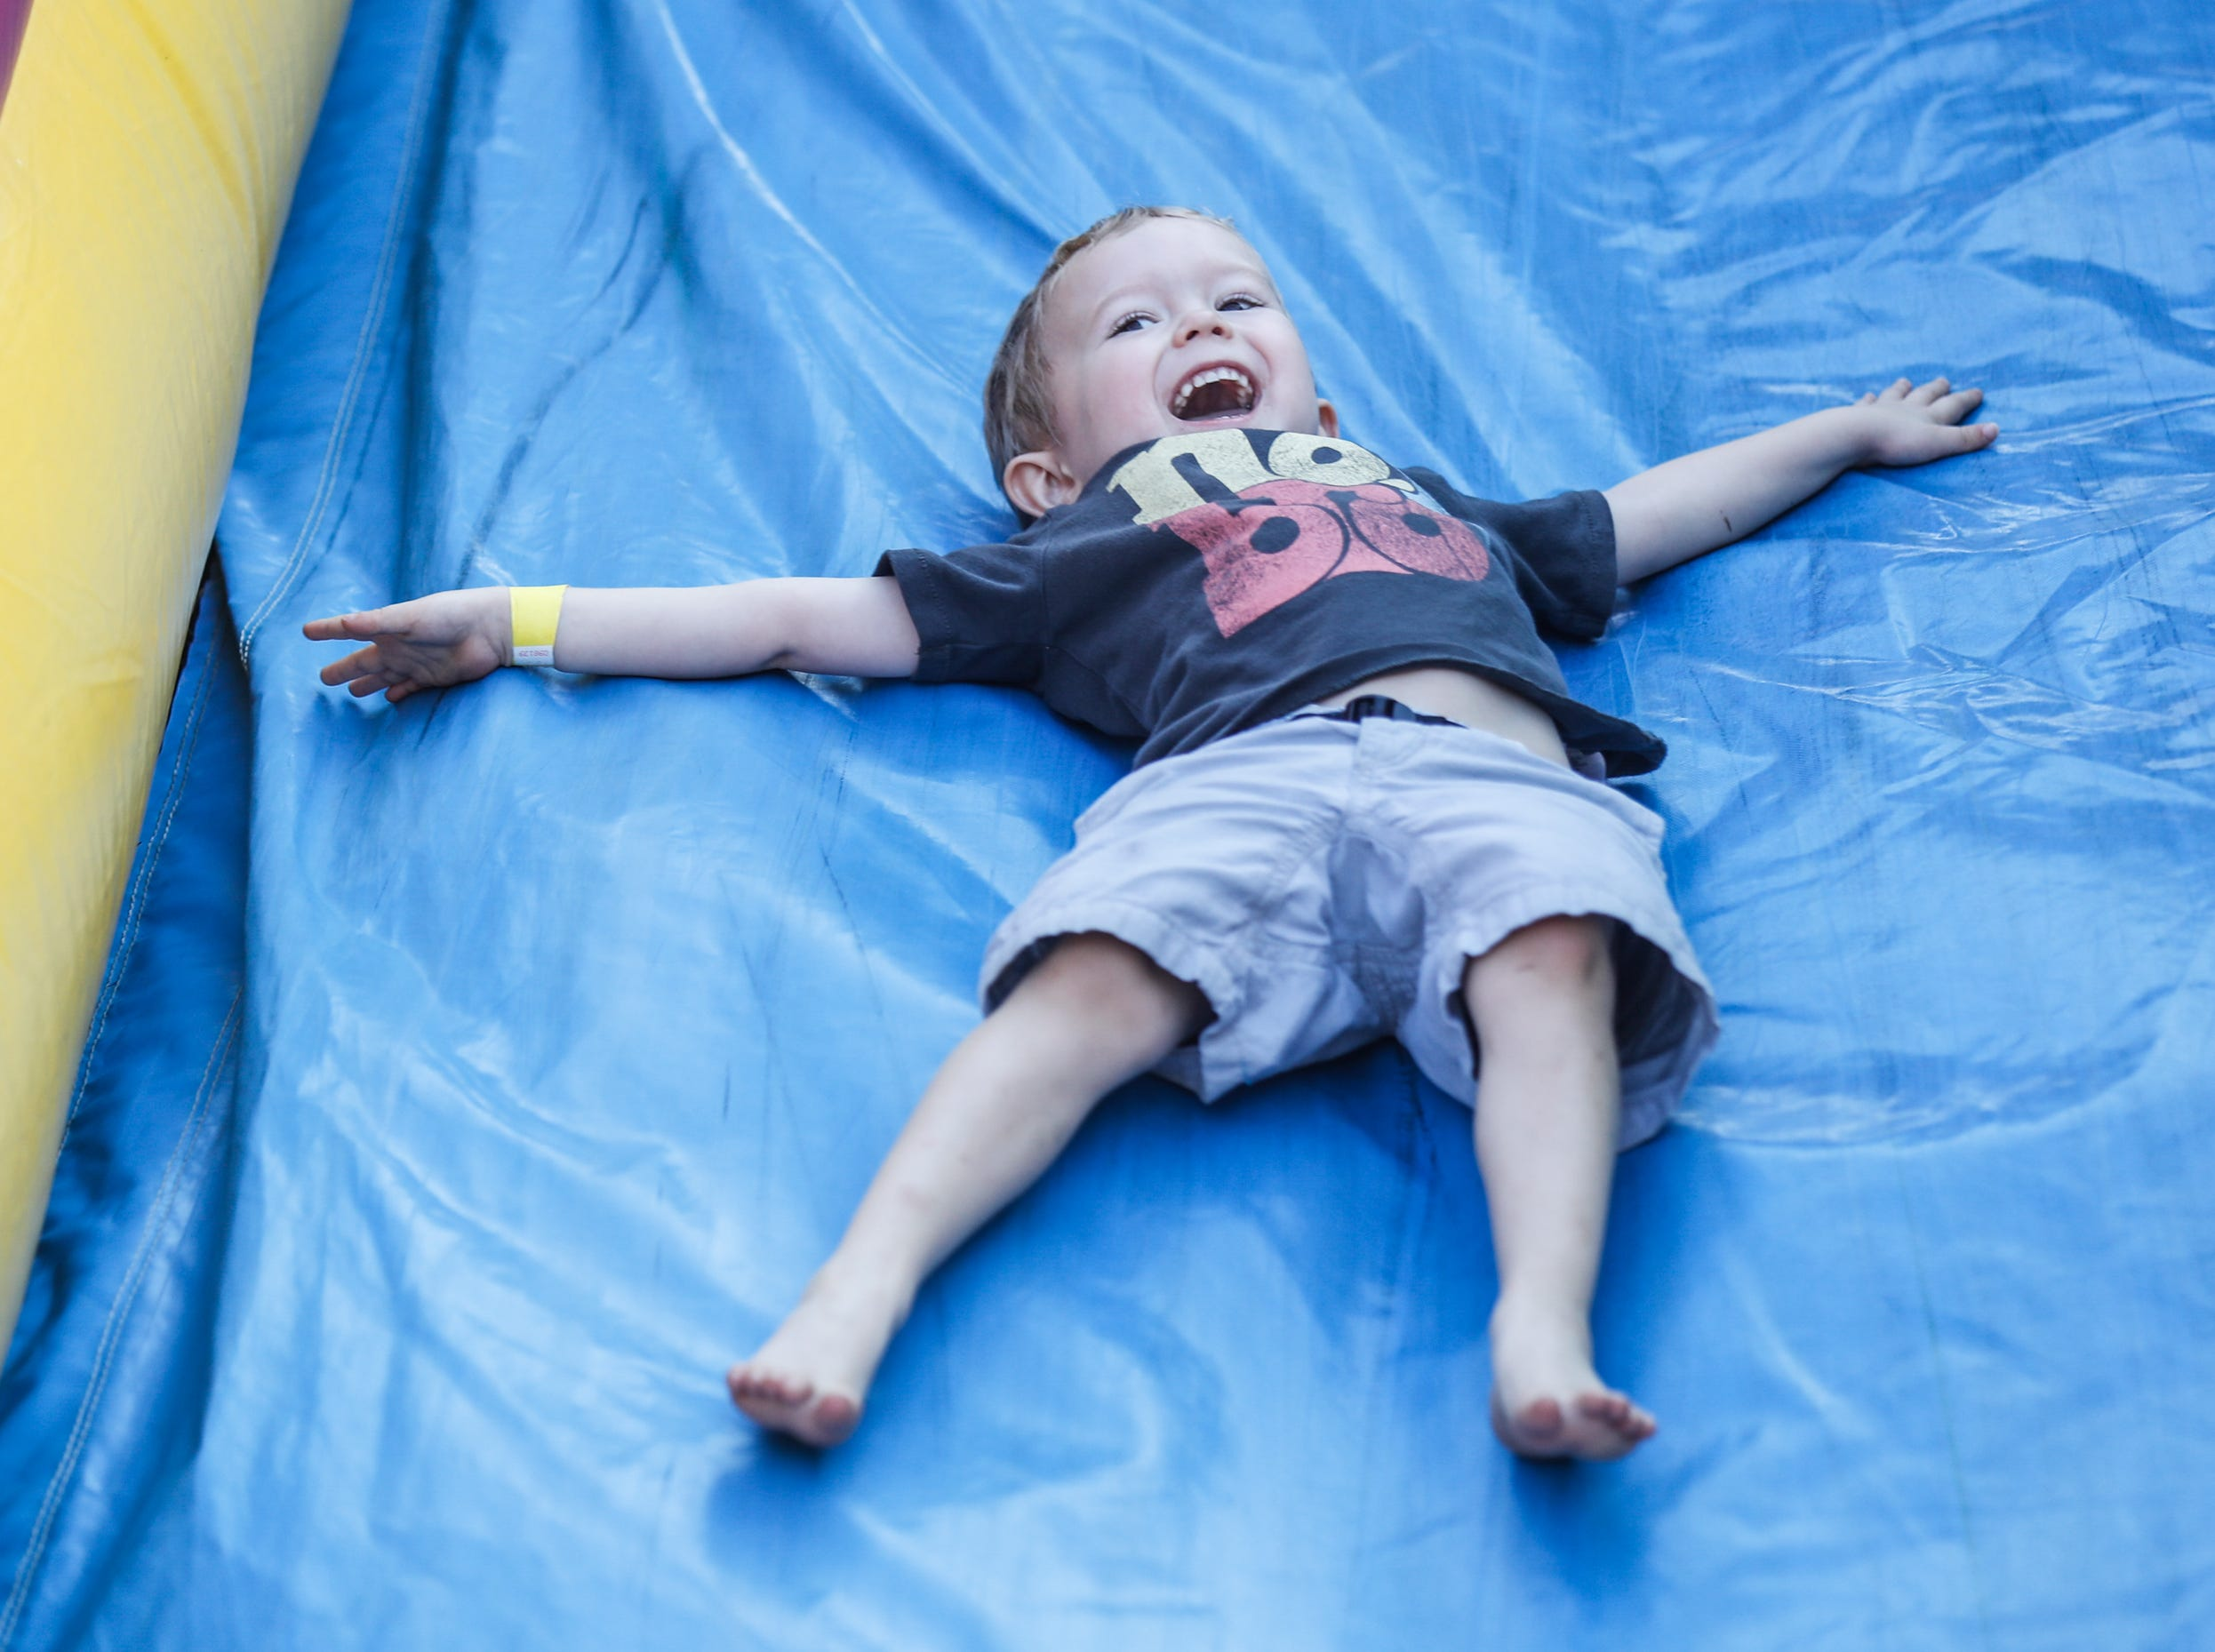 Maddox Roller takes a trip down a slide during the annual St. Vincent and Peyton Manning ChildrenÕs Hospital NICU Reunion at Lions Park in Zionsville Ind. on Sat. Aug. 18, 2018.